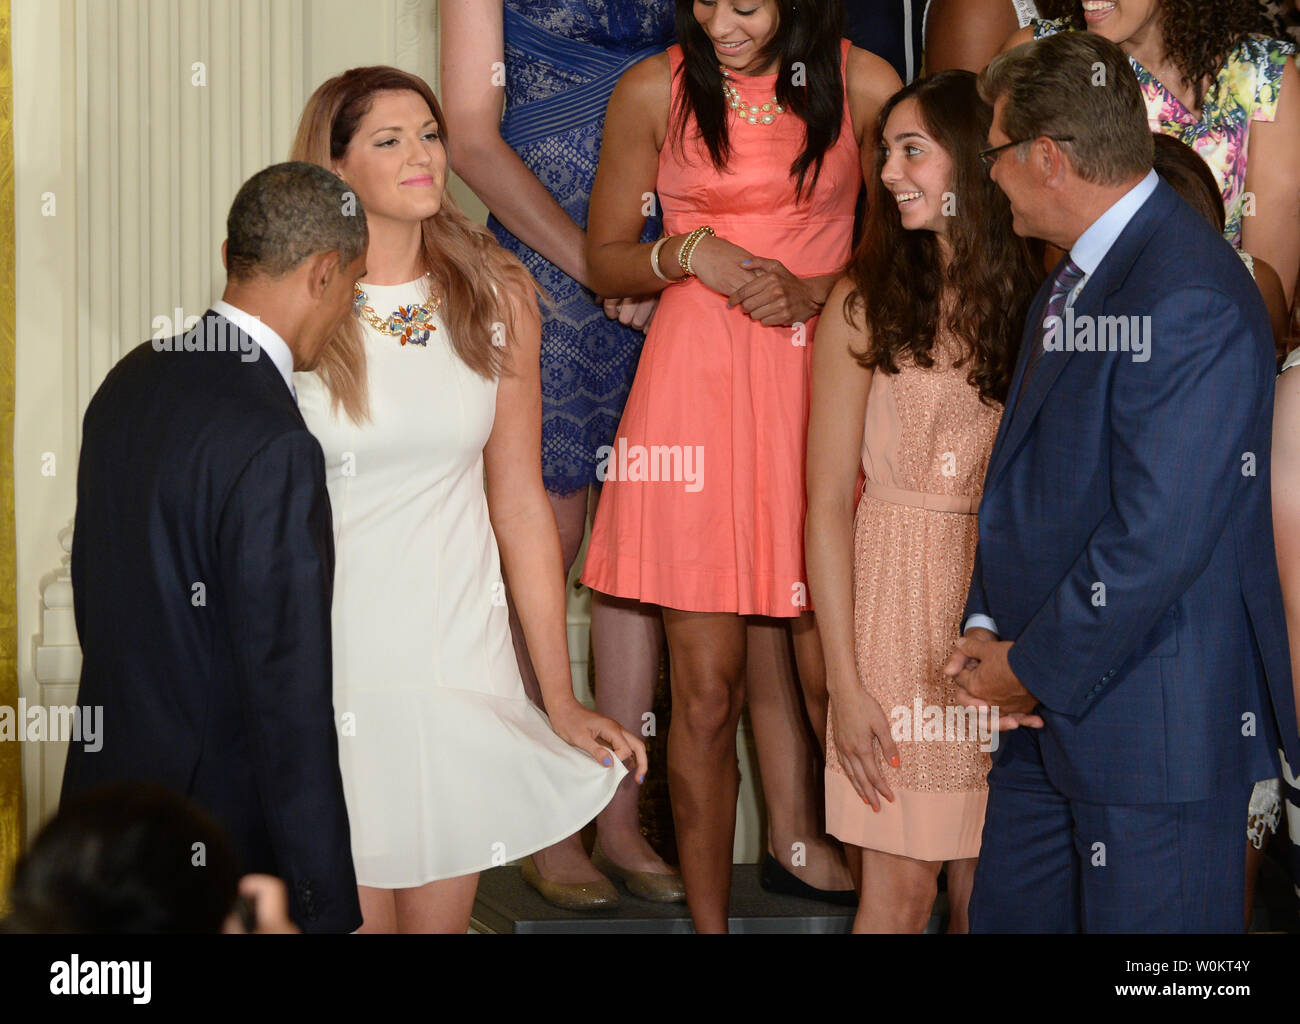 University of Connecticut star basketball player Stefanie Dolson curtsies after she slipped off the podium riser while President Barack Obama (L) was shaking hands with head coach Geno Auriemma (R) during a presentation in the East Room of the White House in Washington, DC on June 9, 2014.  Obama honored both the women's and men's basketball teams from the University of Connecticut as they both won the NCAA collegiate basketball championships for the 2013-2014 season.    UPI/Pat Benic - Stock Image